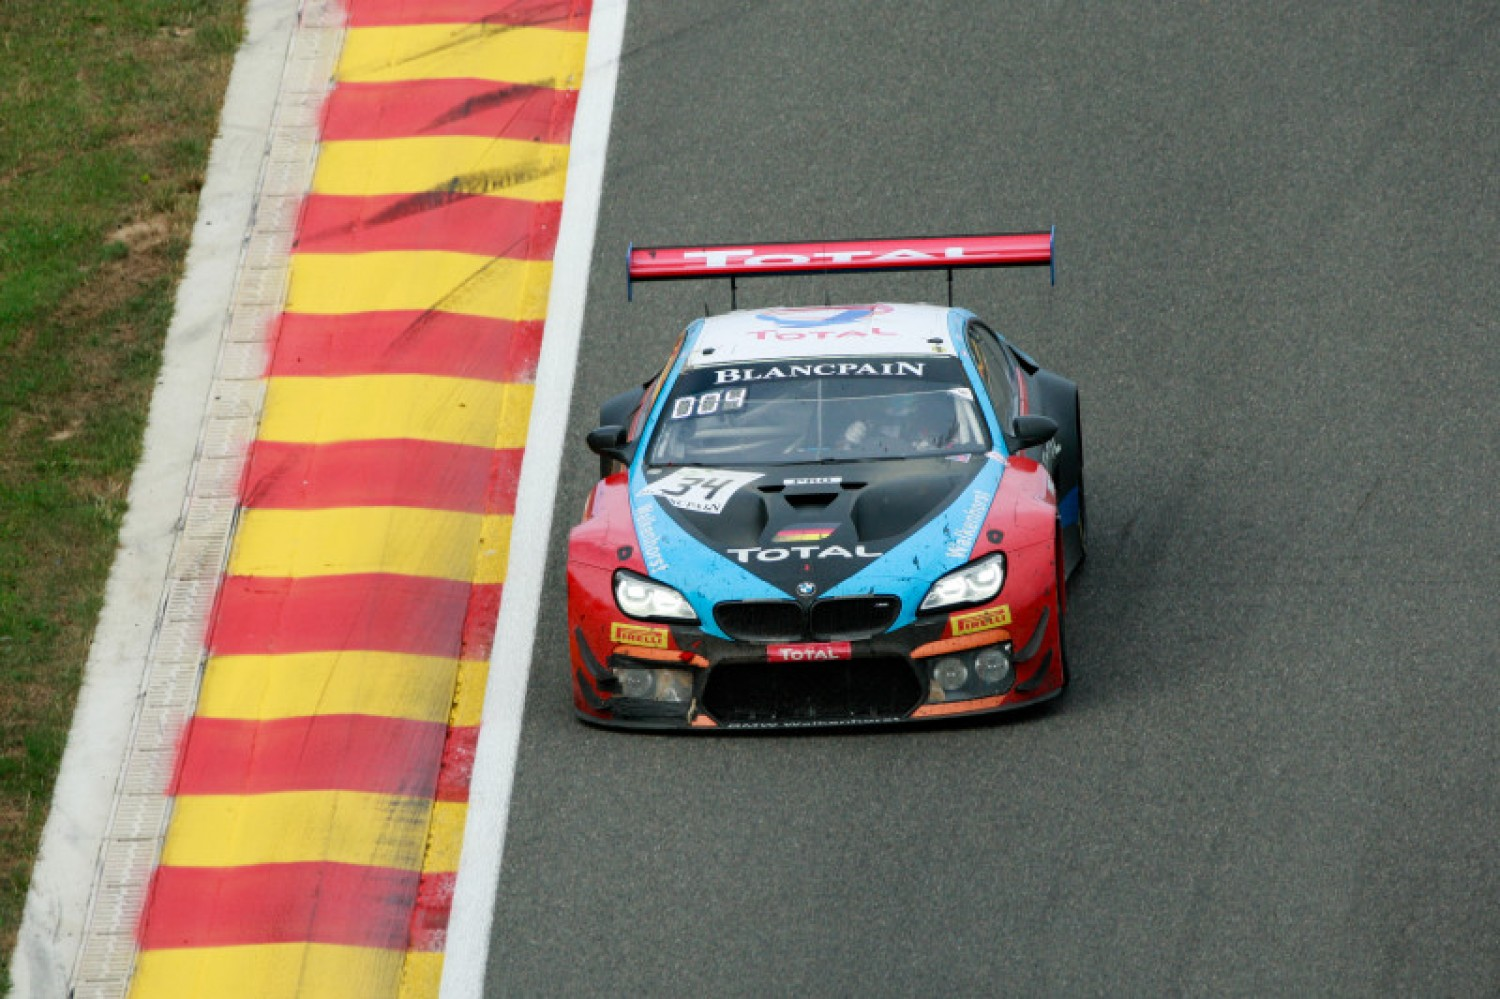 Walkenhorst-BMW secures memorable win at 70th edition Total 24 Hours of Spa